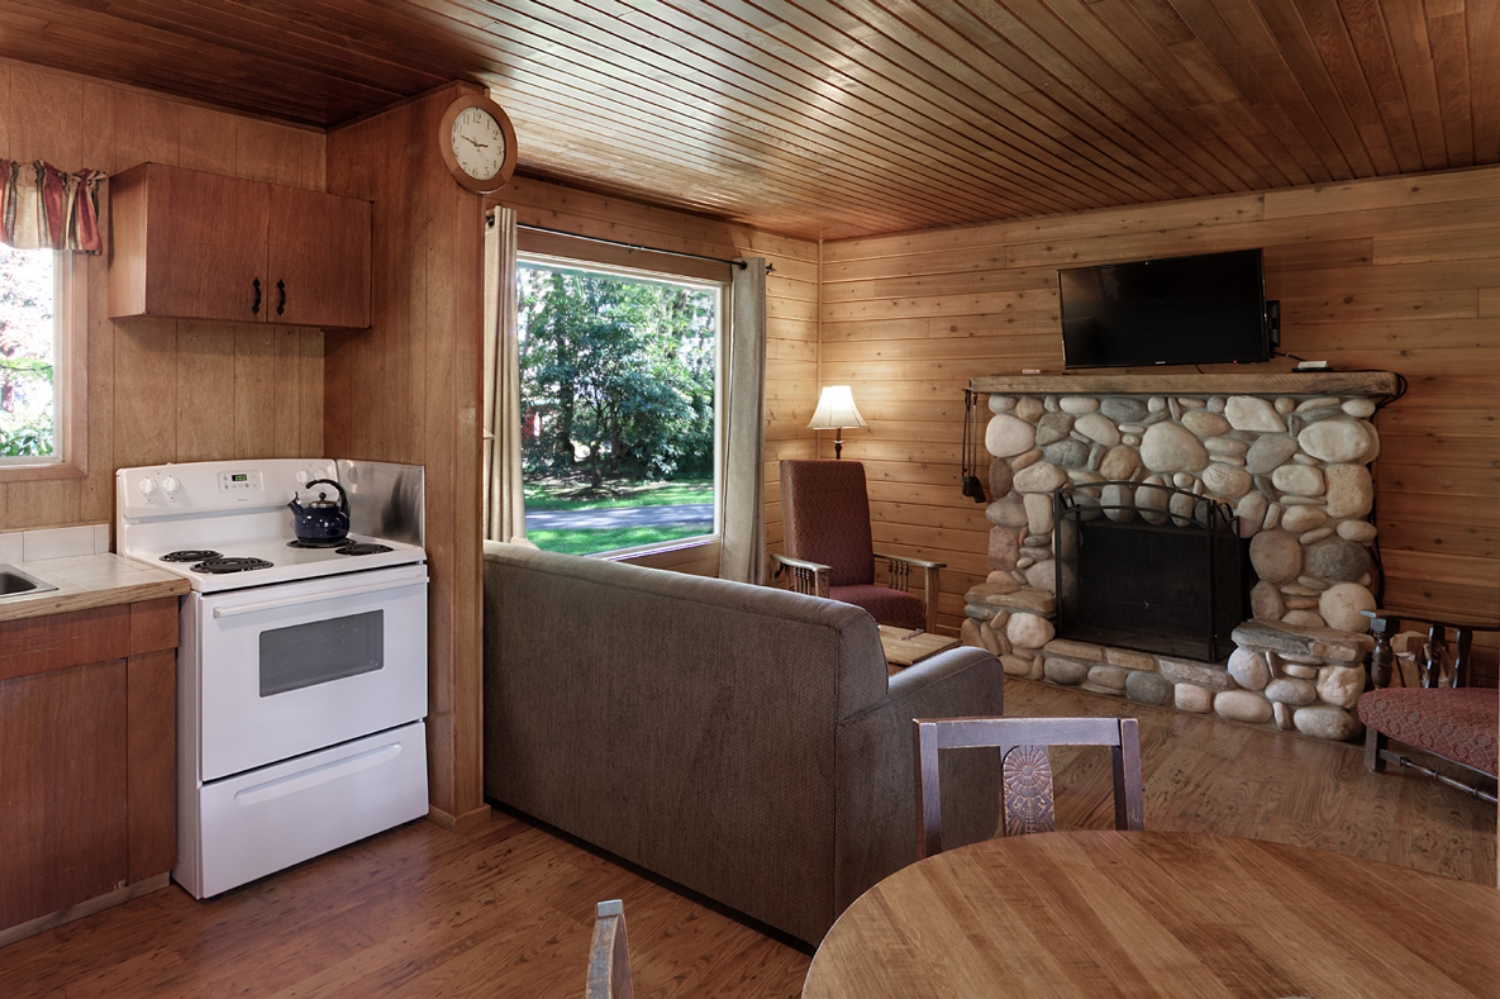 CABIN 9 - Two Bedrooms  Tucked away in the garden featuring a beautiful river-rock fireplace. From $189-$245